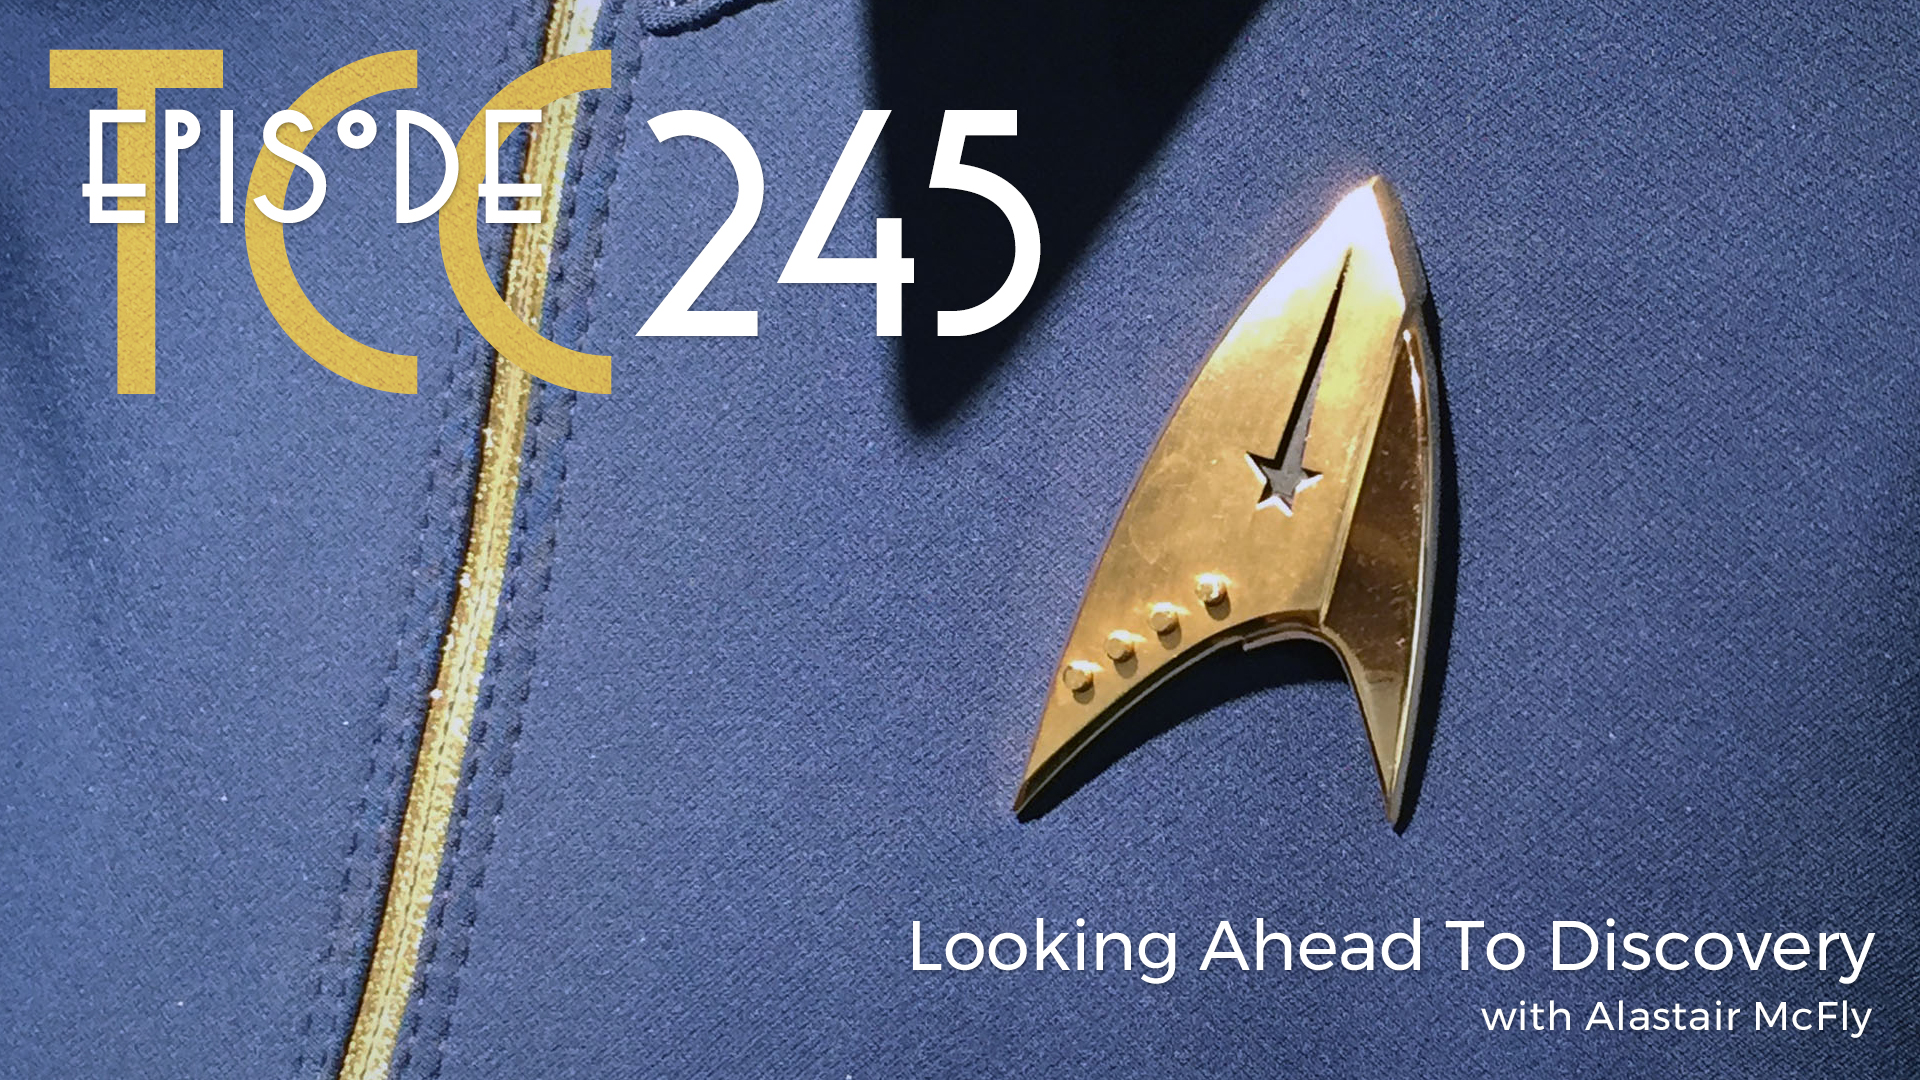 The Citadel Cafe 245: Looking Ahead To Discovery